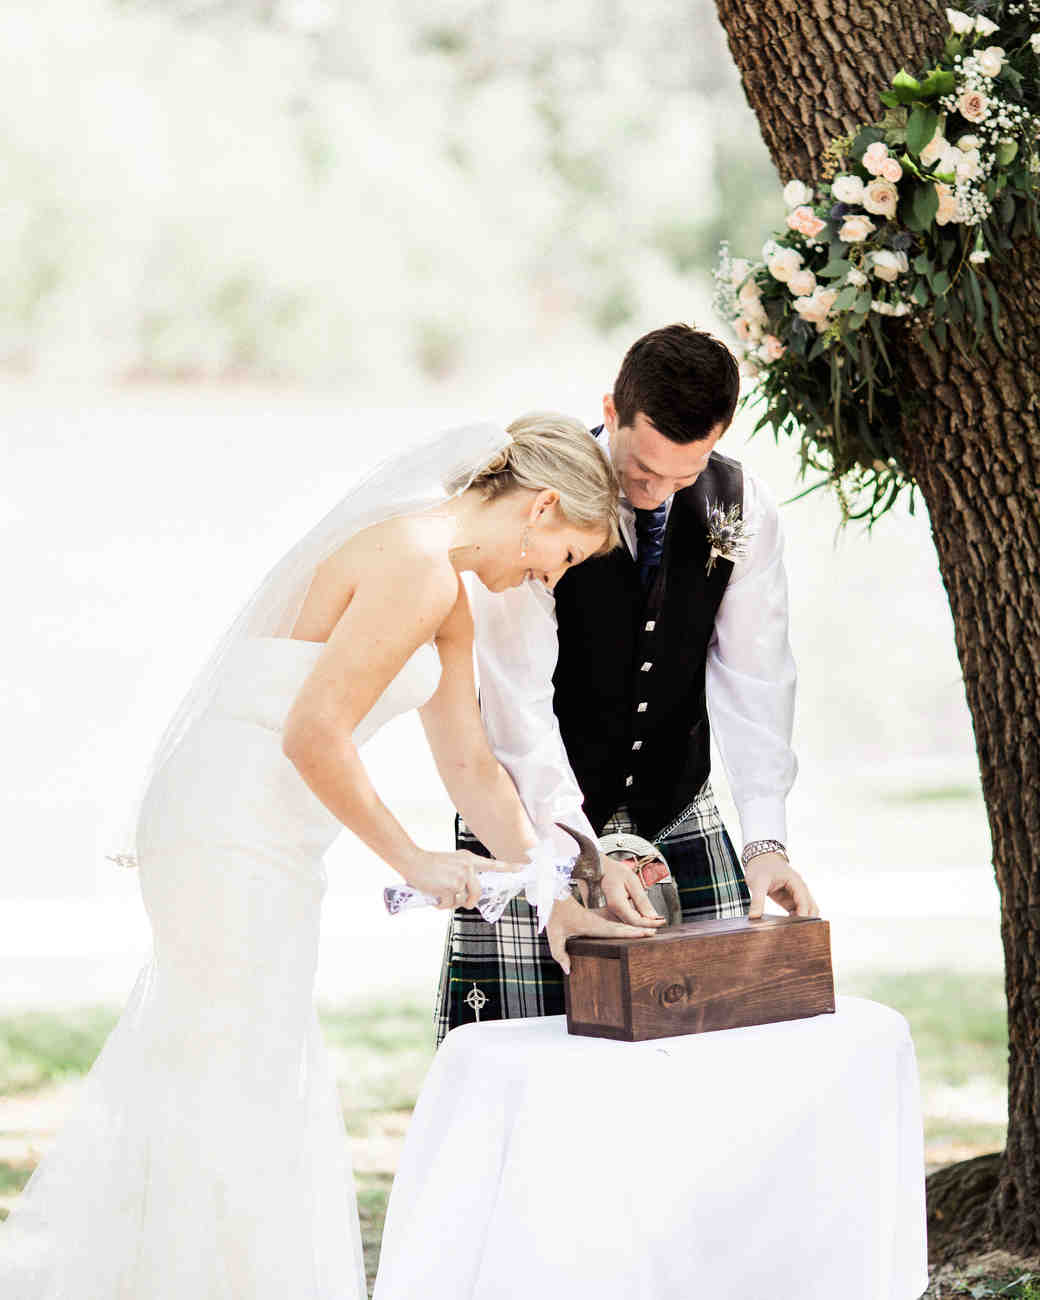 25 creative wedding rituals that symbolize unity martha stewart photography leighanne herr buycottarizona Images